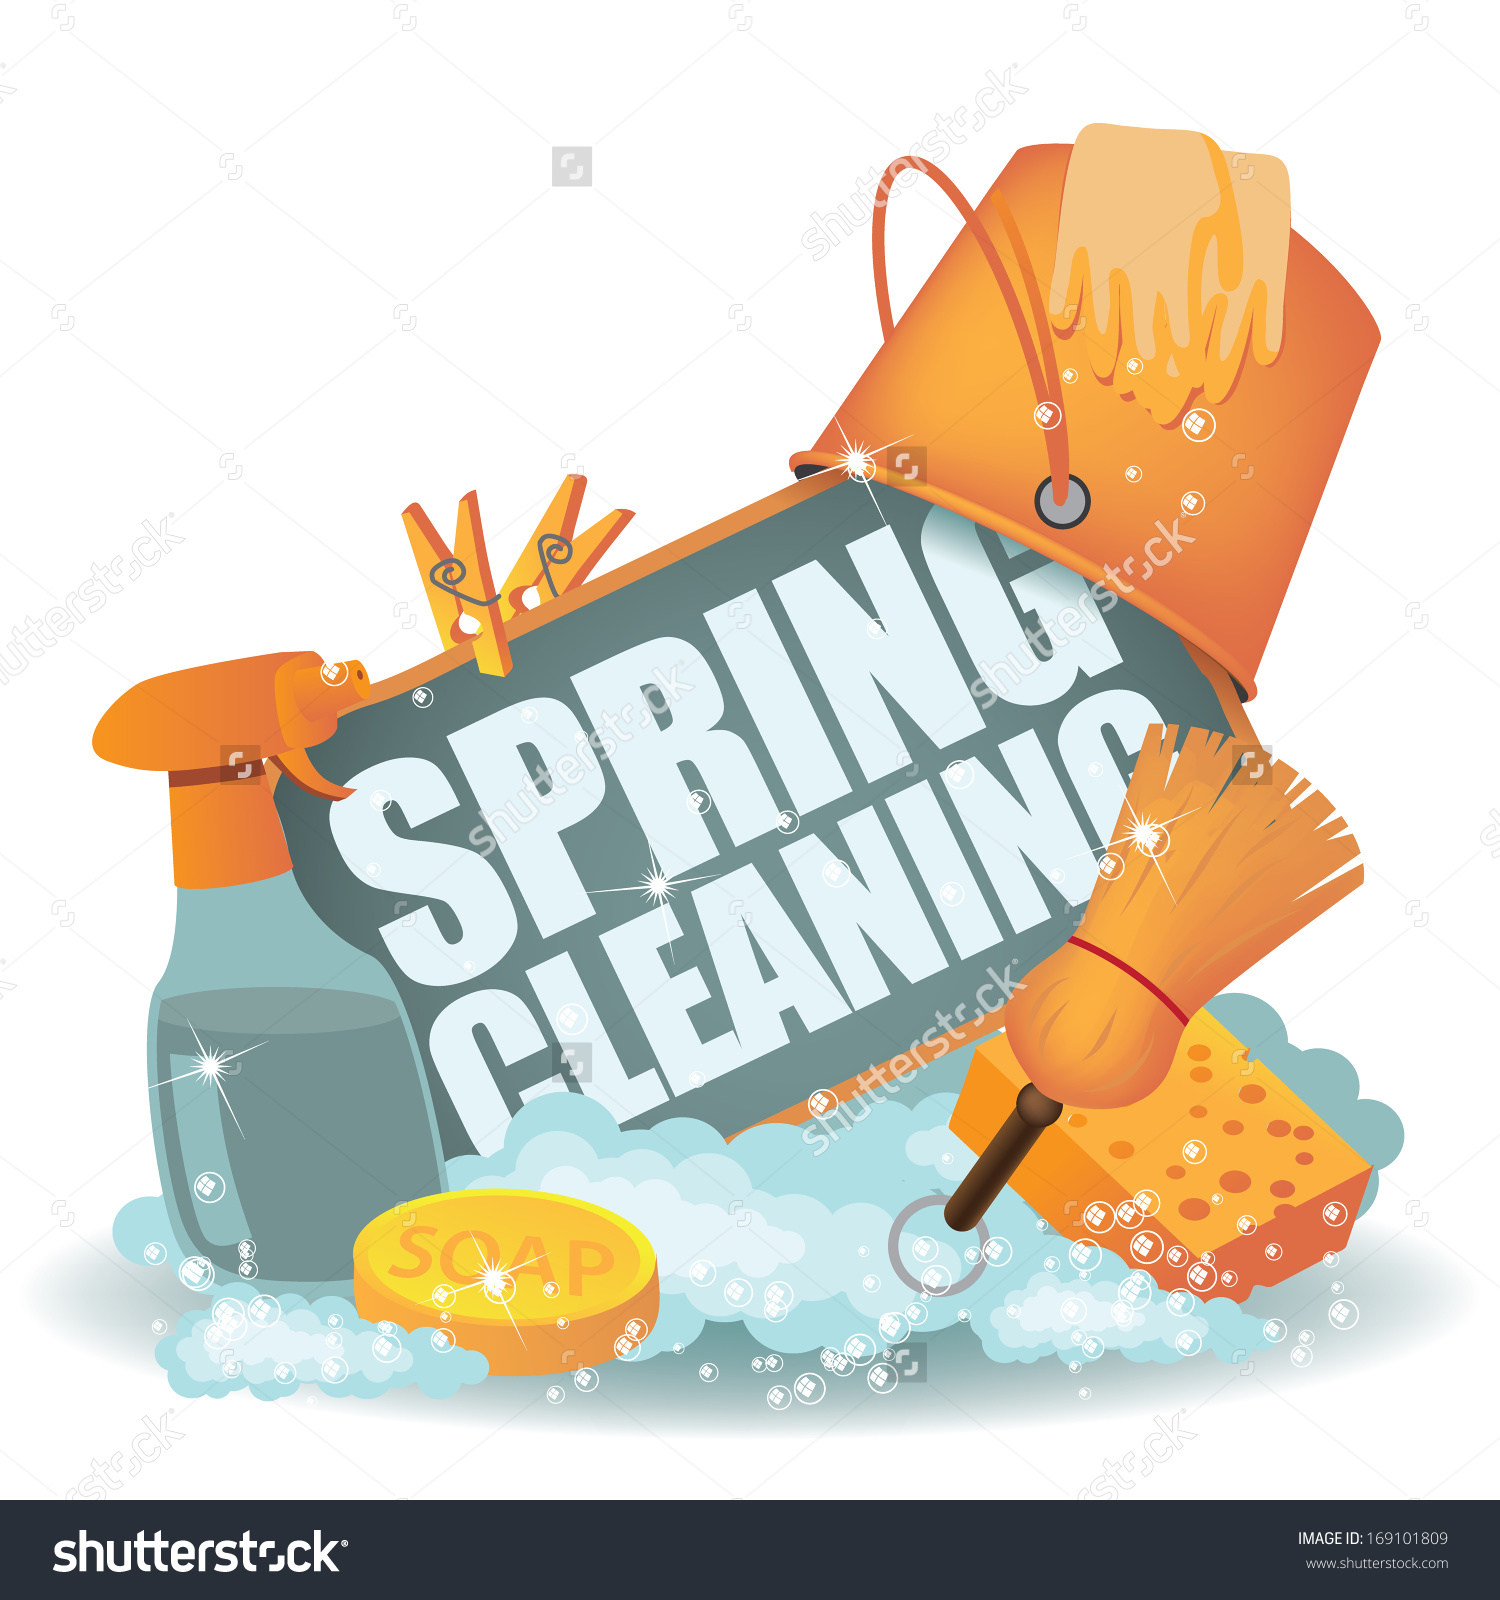 31+ Spring Cleaning Clipart.